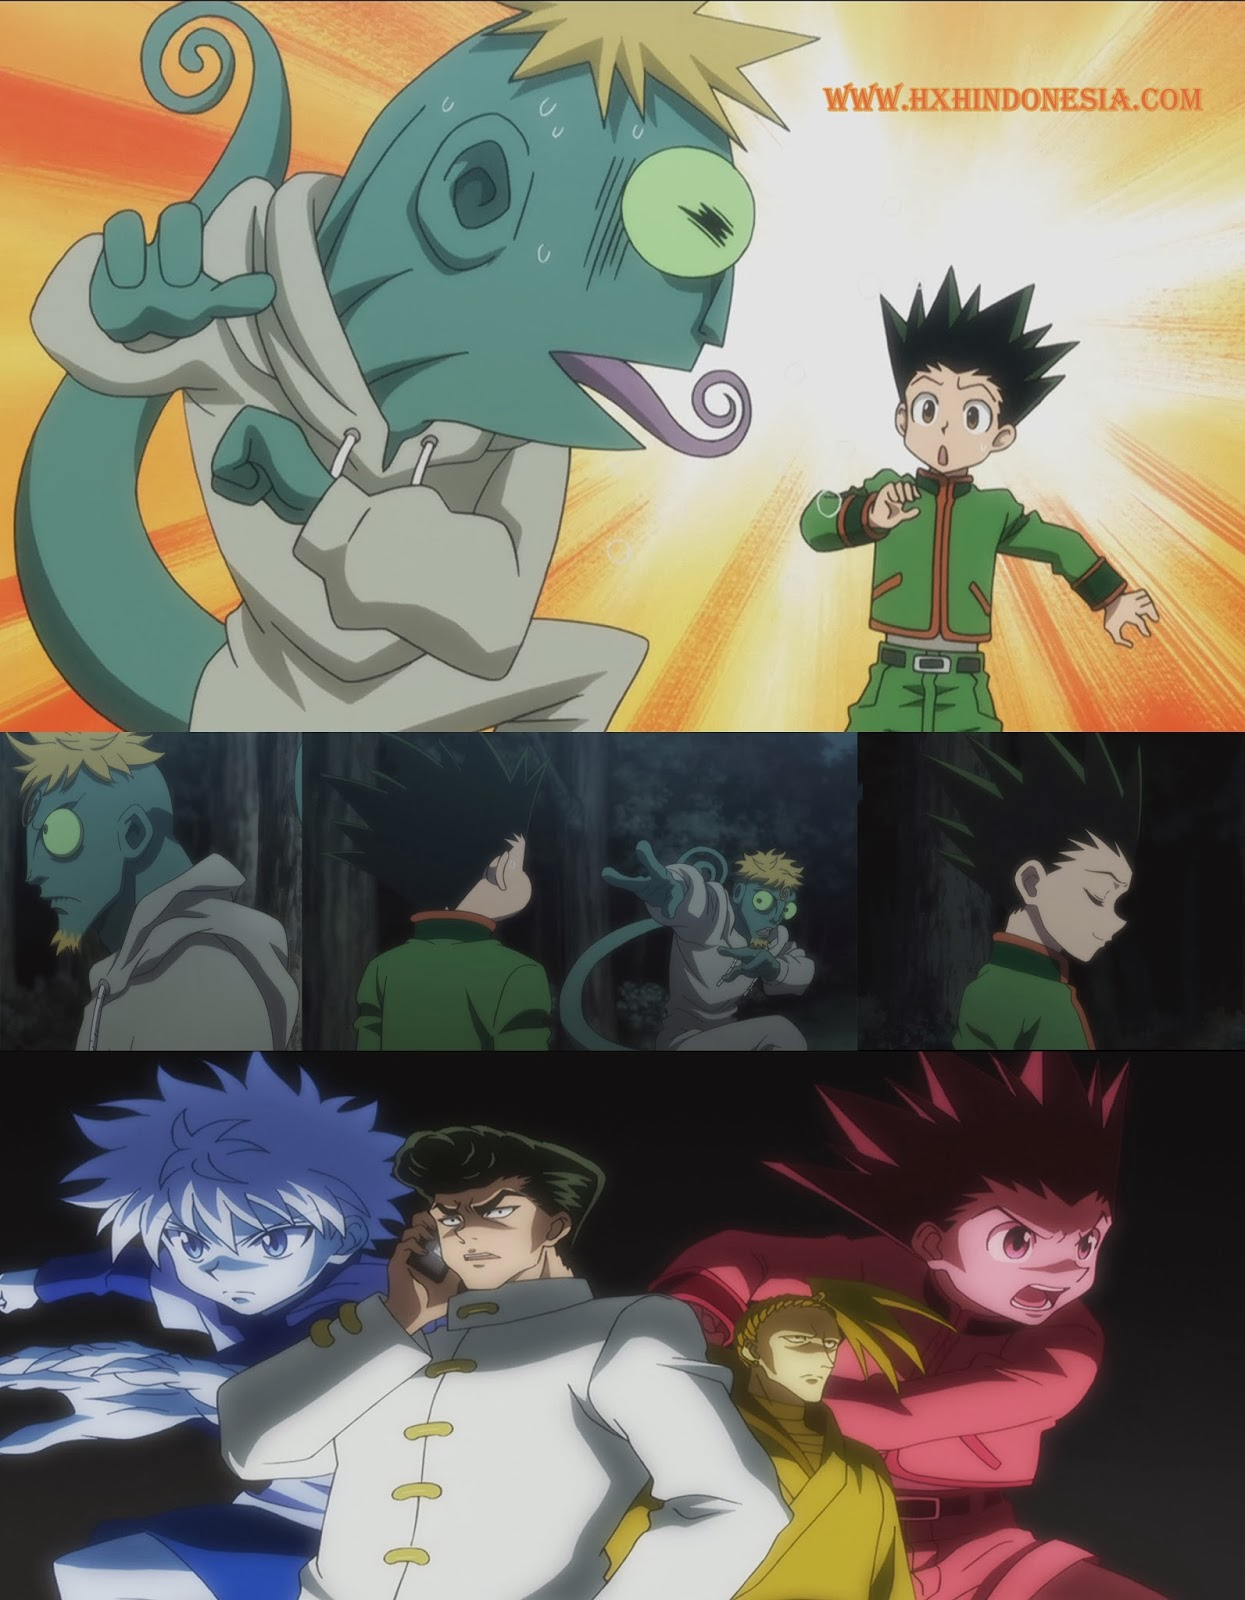 Hunter X Hunter Episode 102 Subtitle Indonesia & English Subs